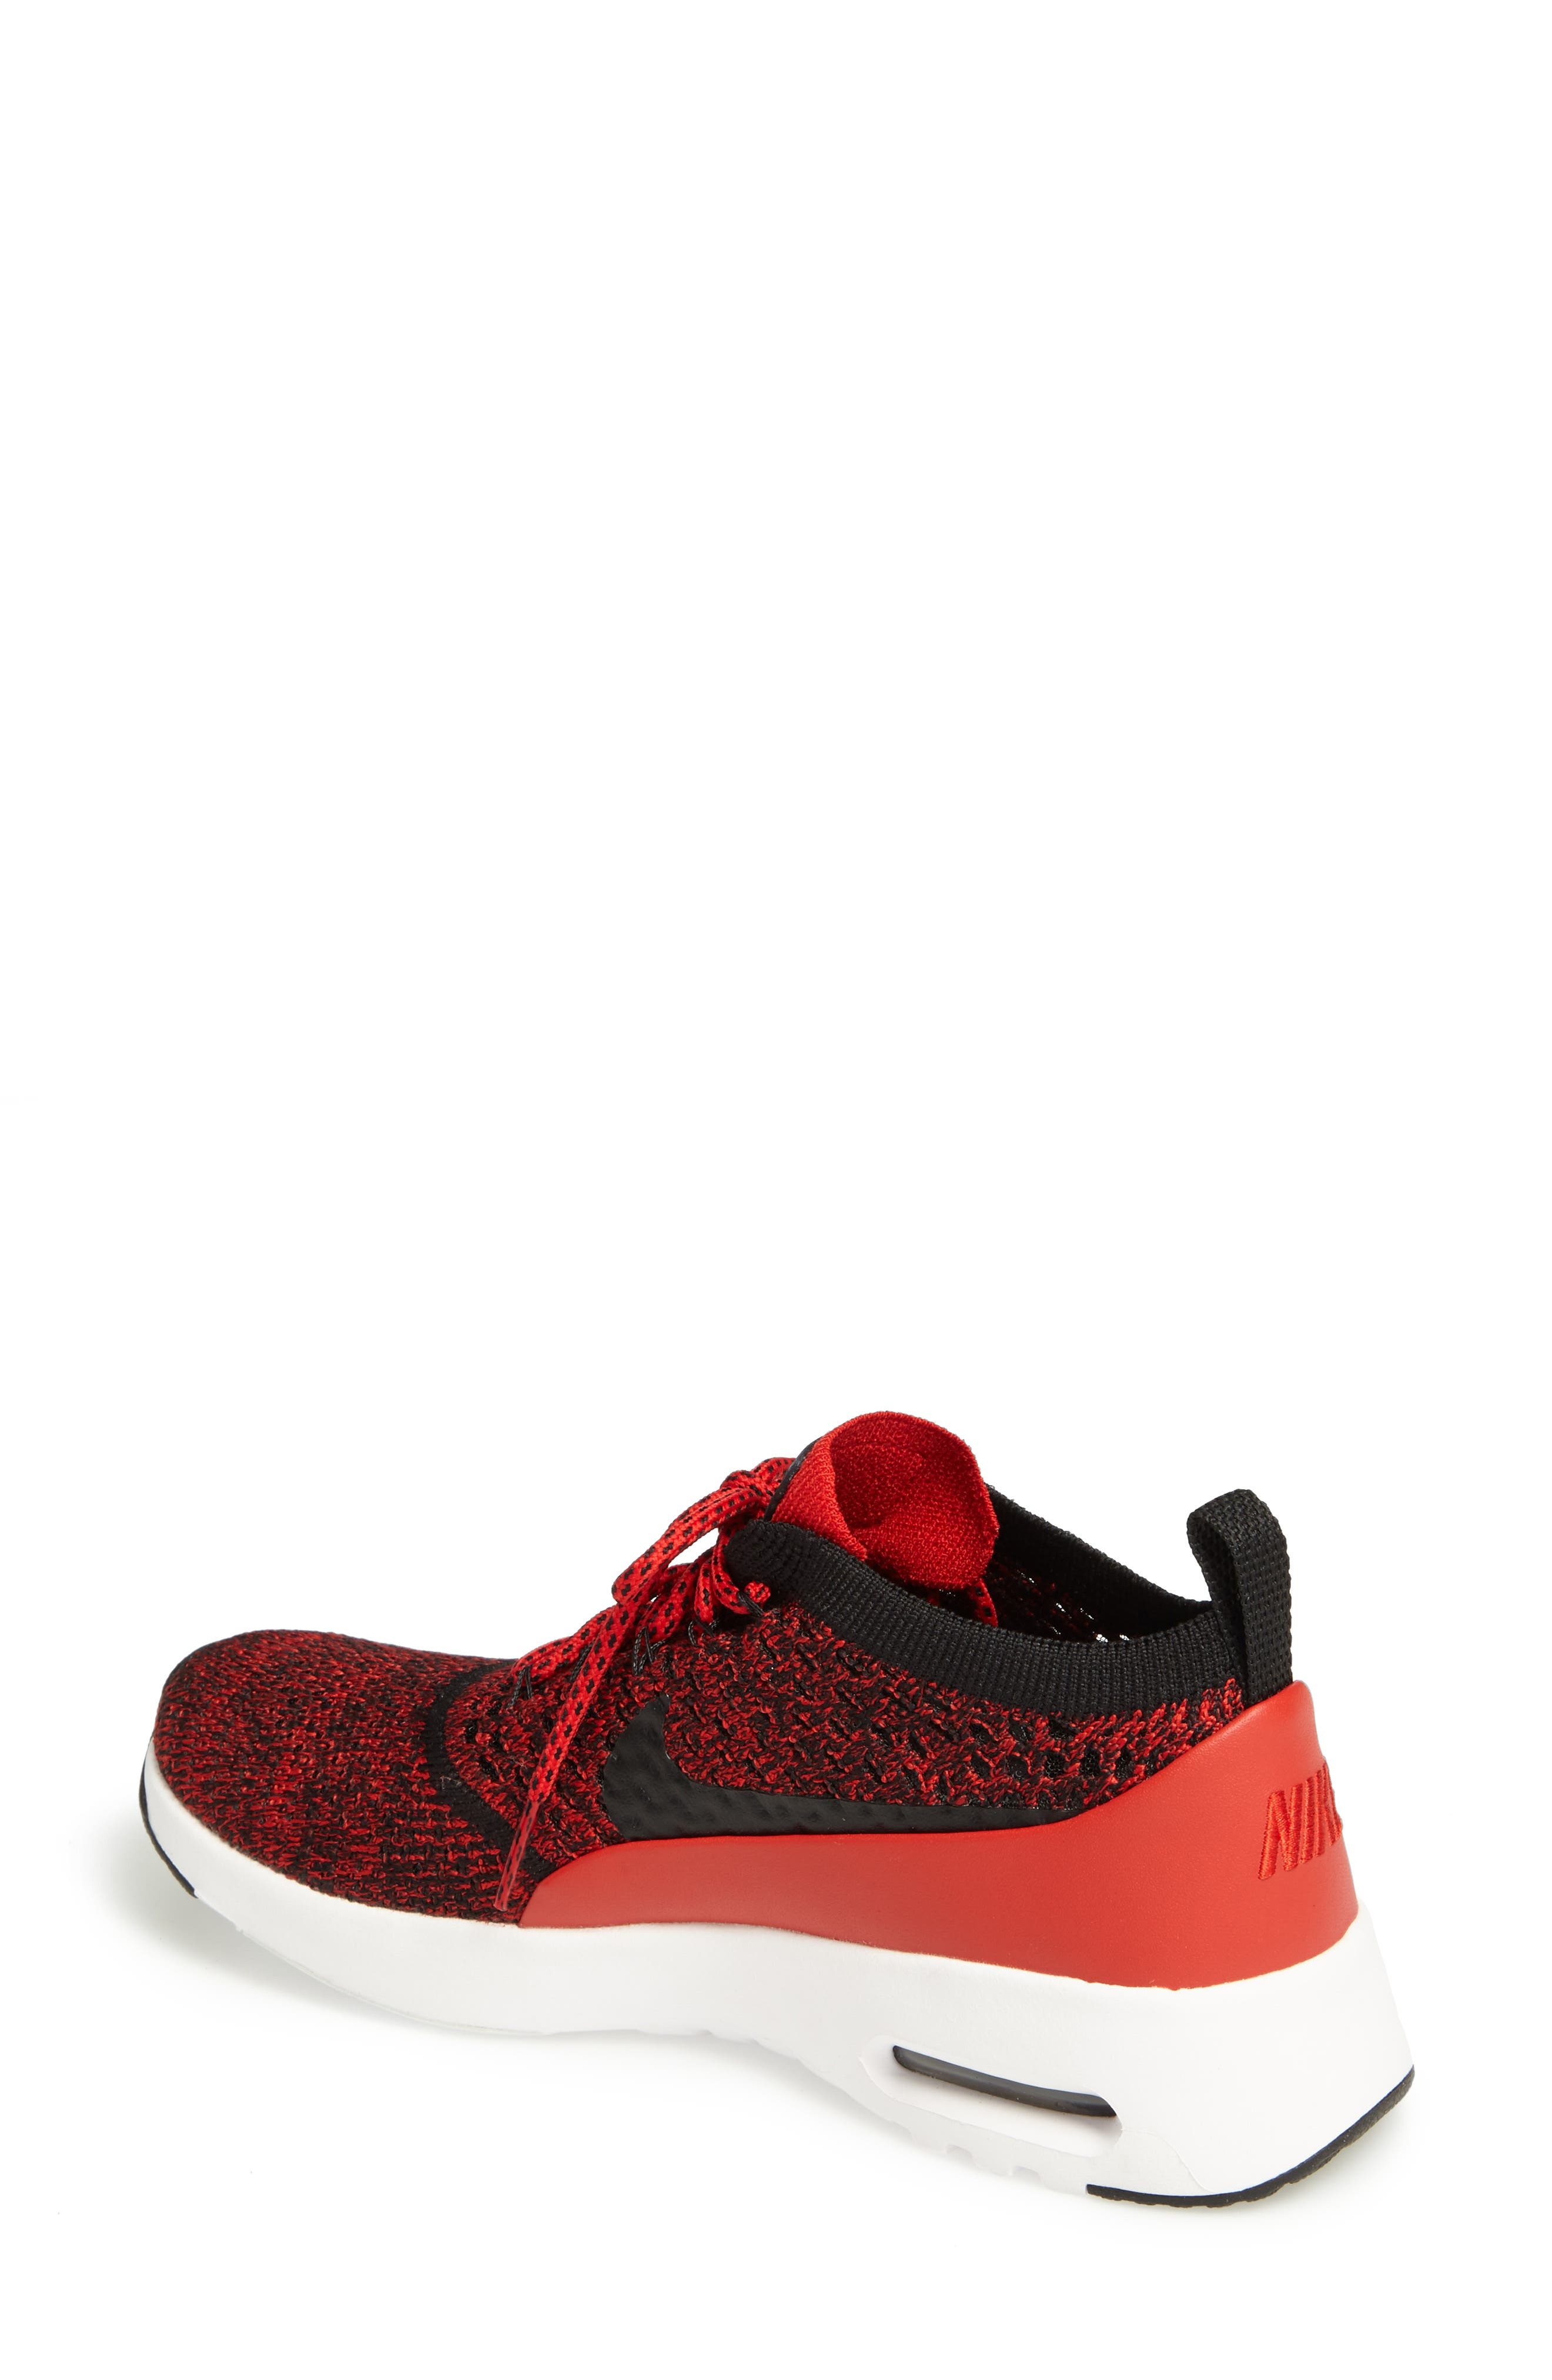 Air Max Thea Ultra Flyknit Sneaker,                             Alternate thumbnail 23, color,